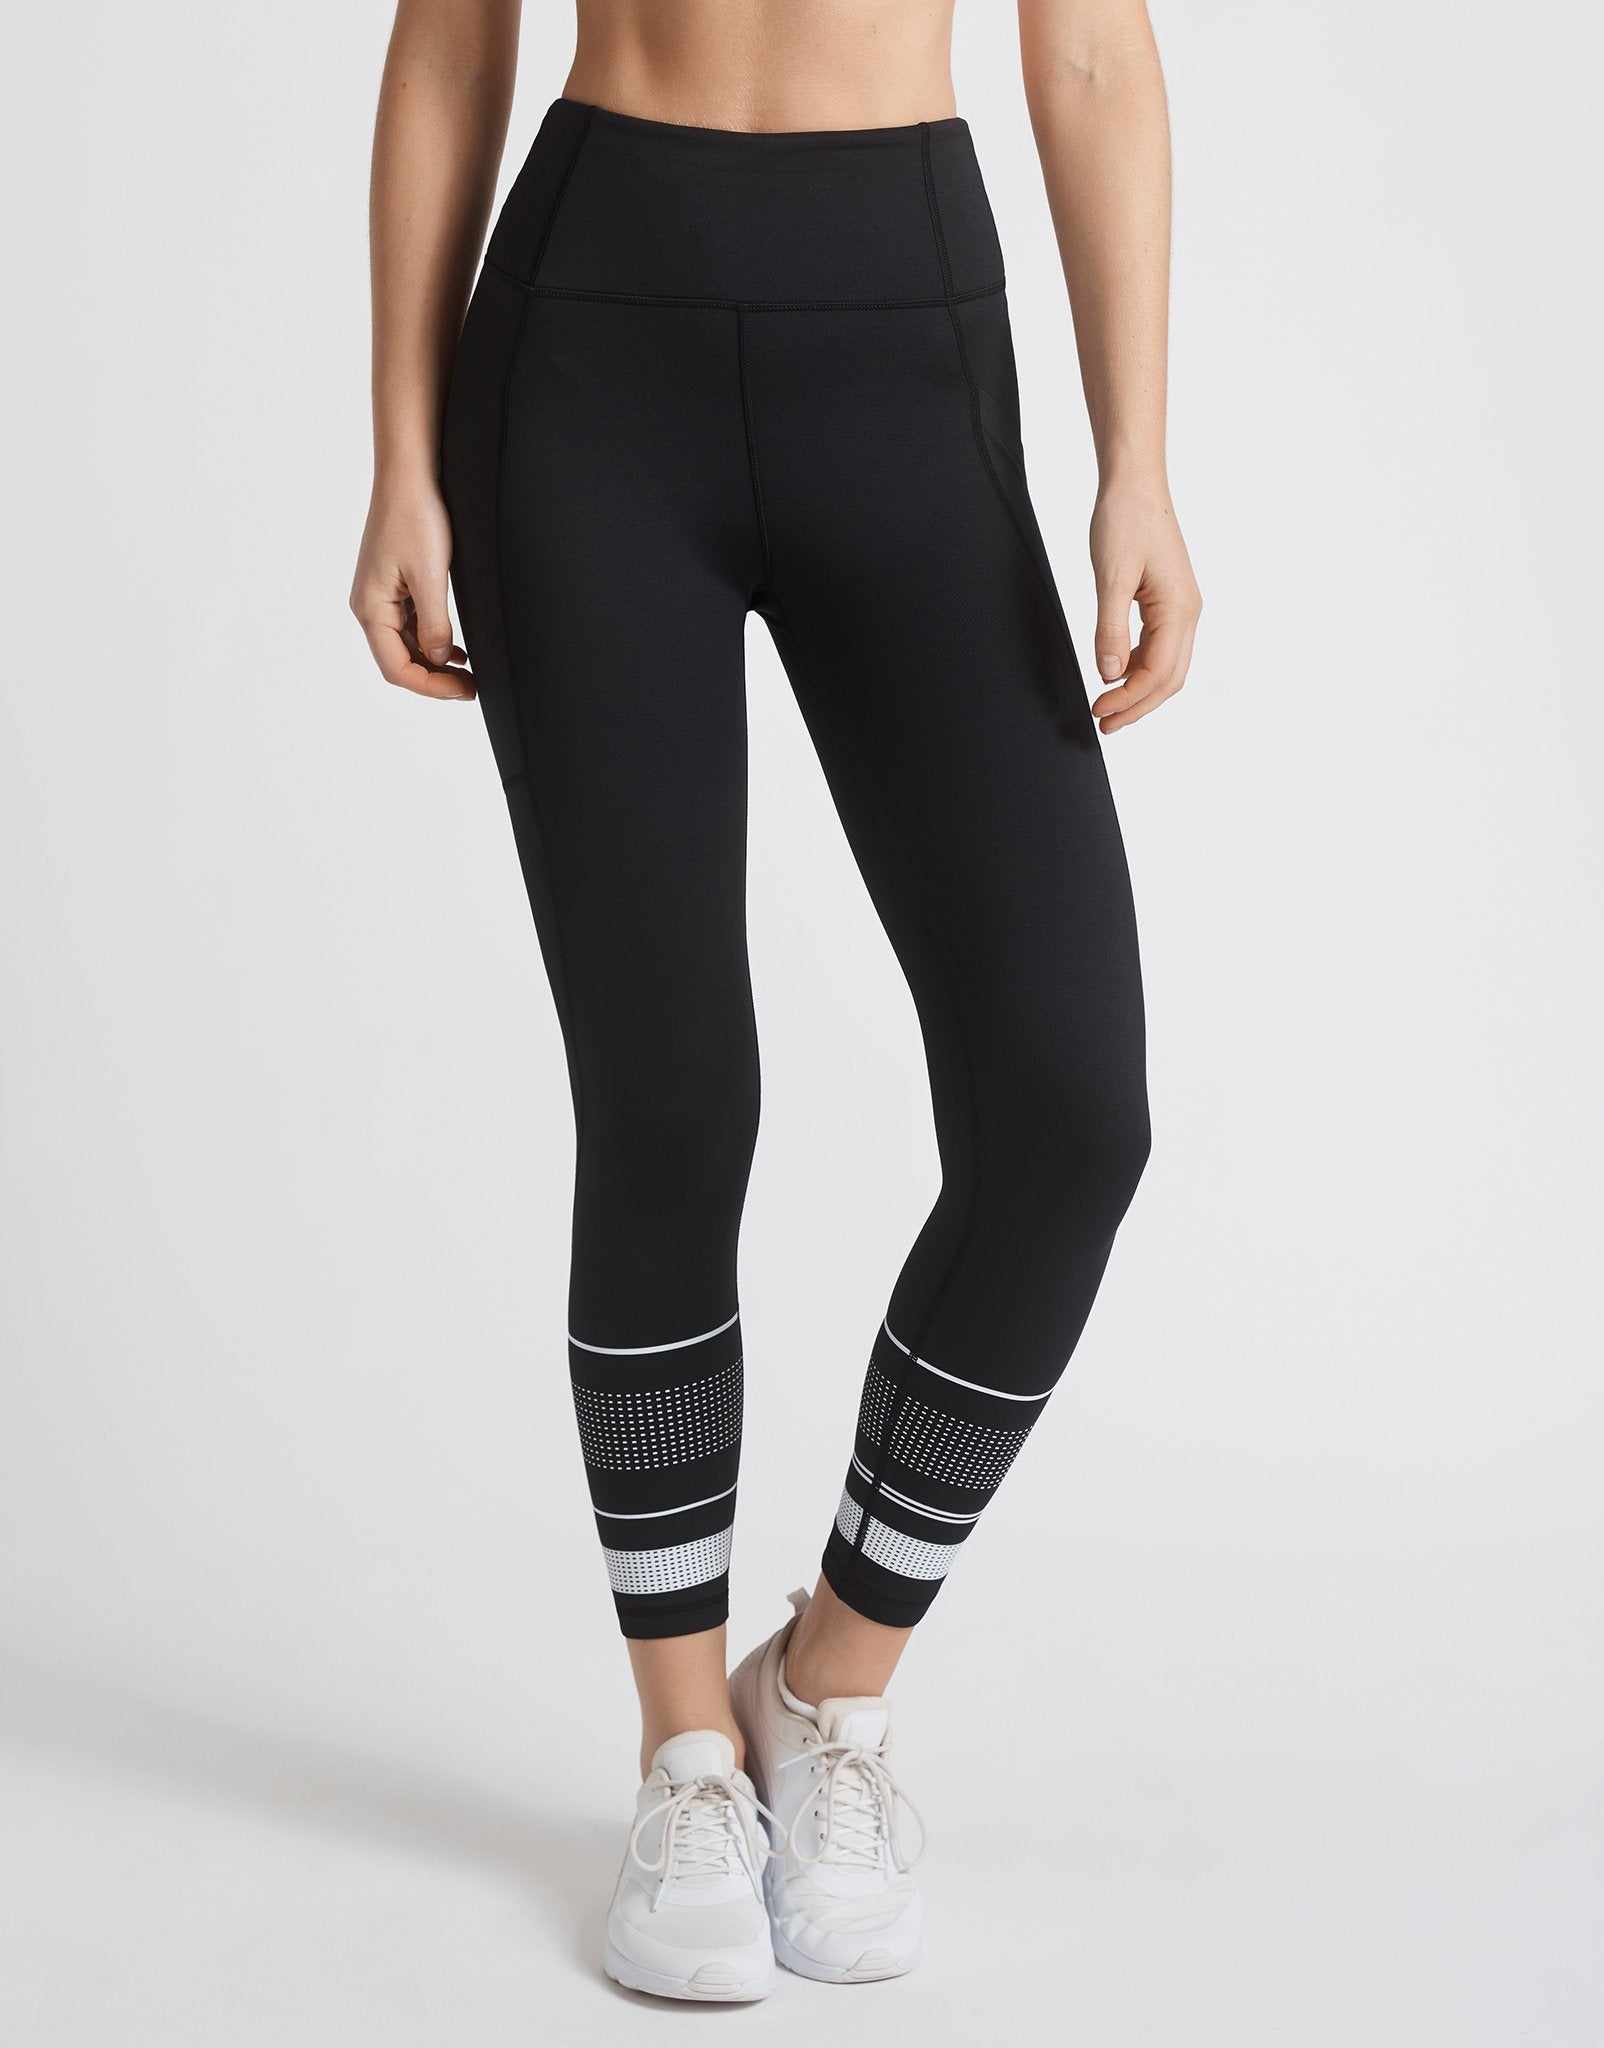 Lilybod-Zoe-XR-Tarmac-Black-Legging-side.jpg